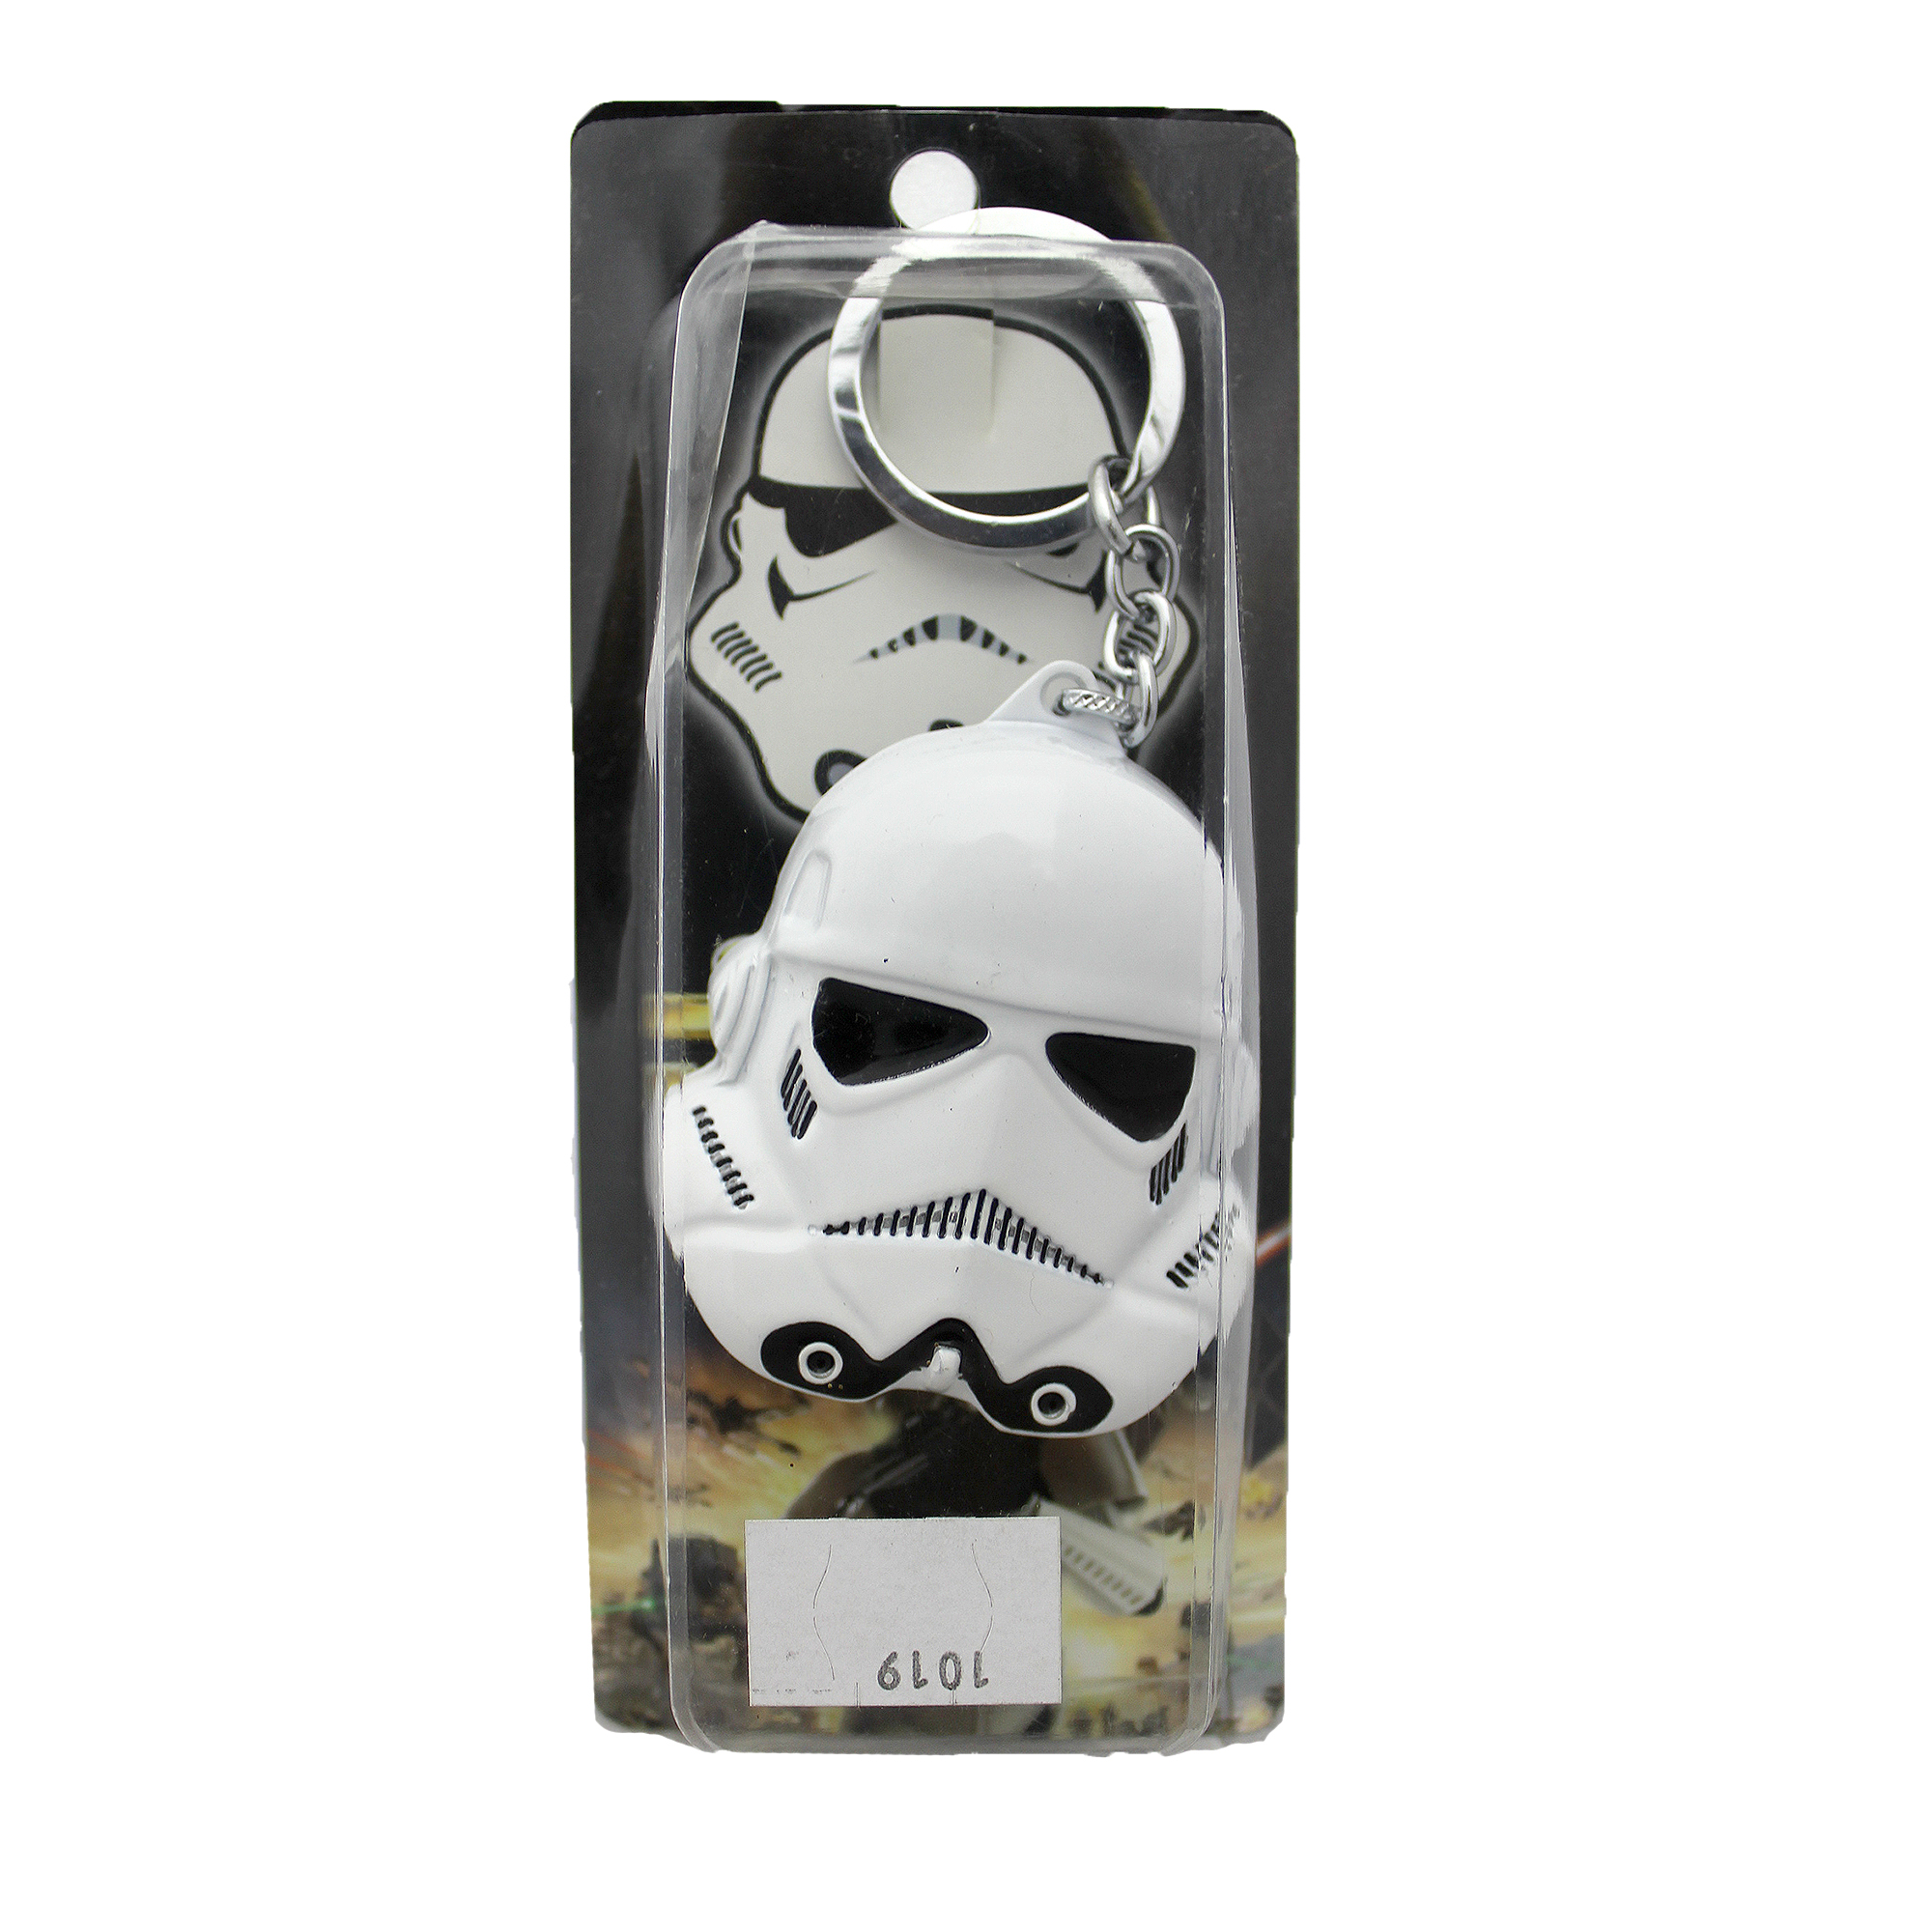 Star Wars Stormtrooper Key Chain End 3272020 106 Pm